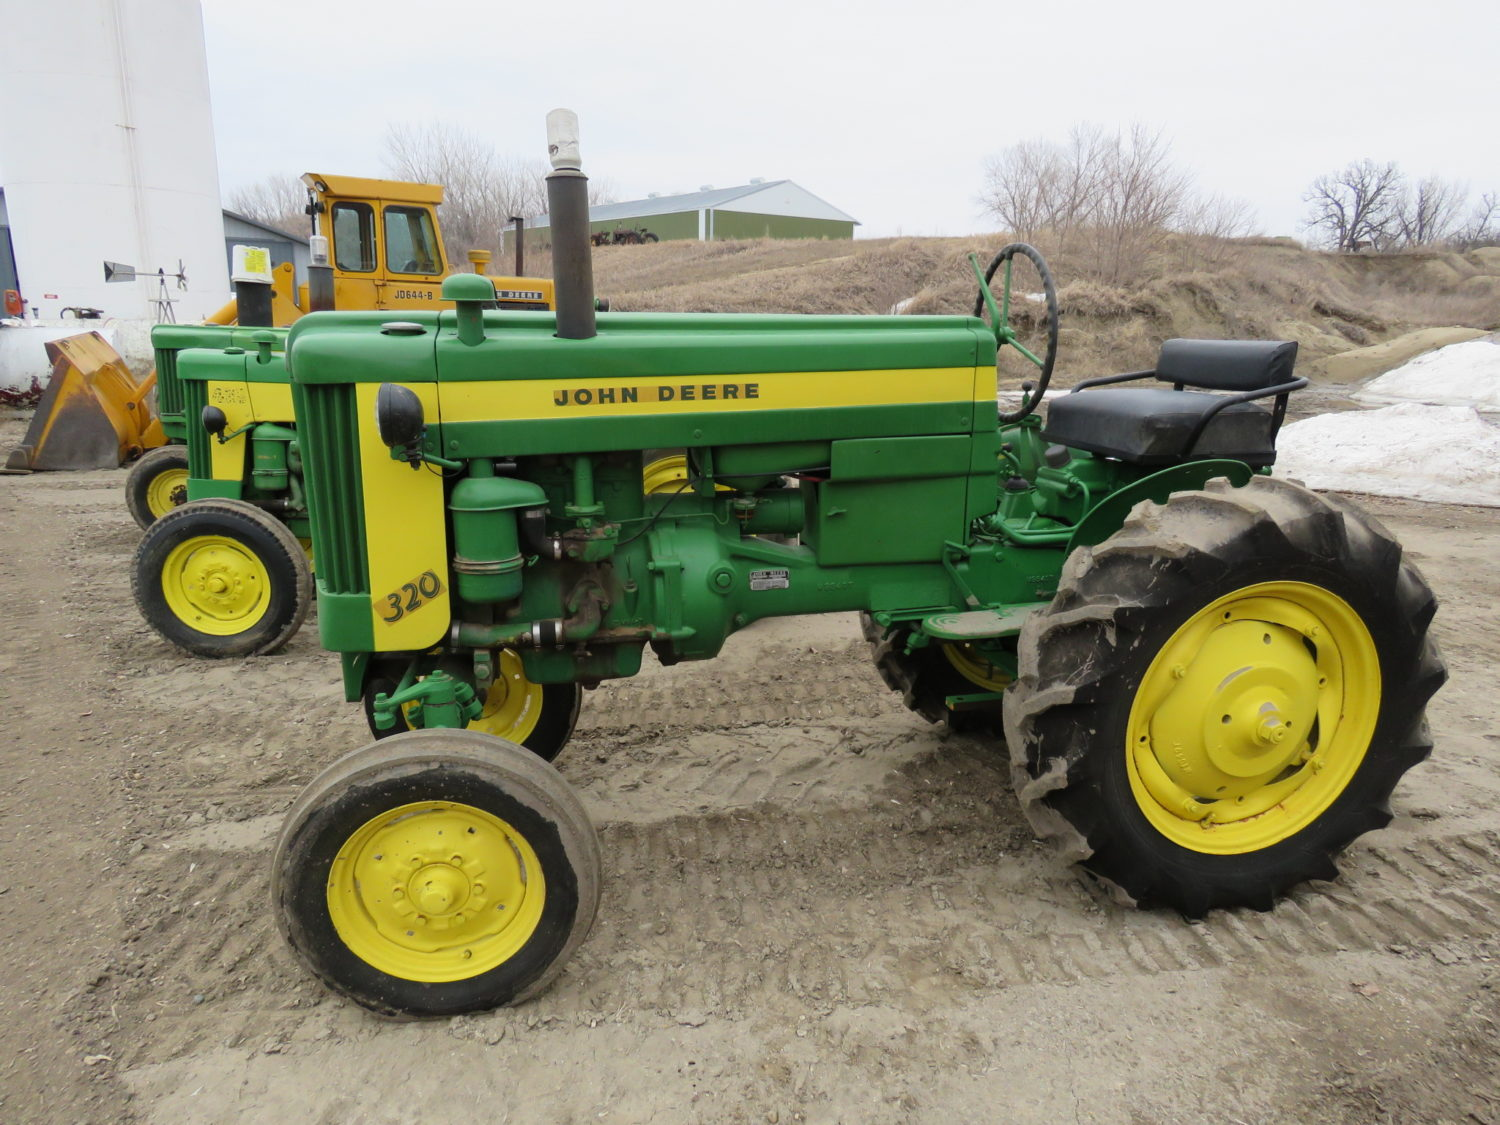 Day 1- Antique Tractors, Farm Equipment, Toys, & More- The James Graham Collection - image 10